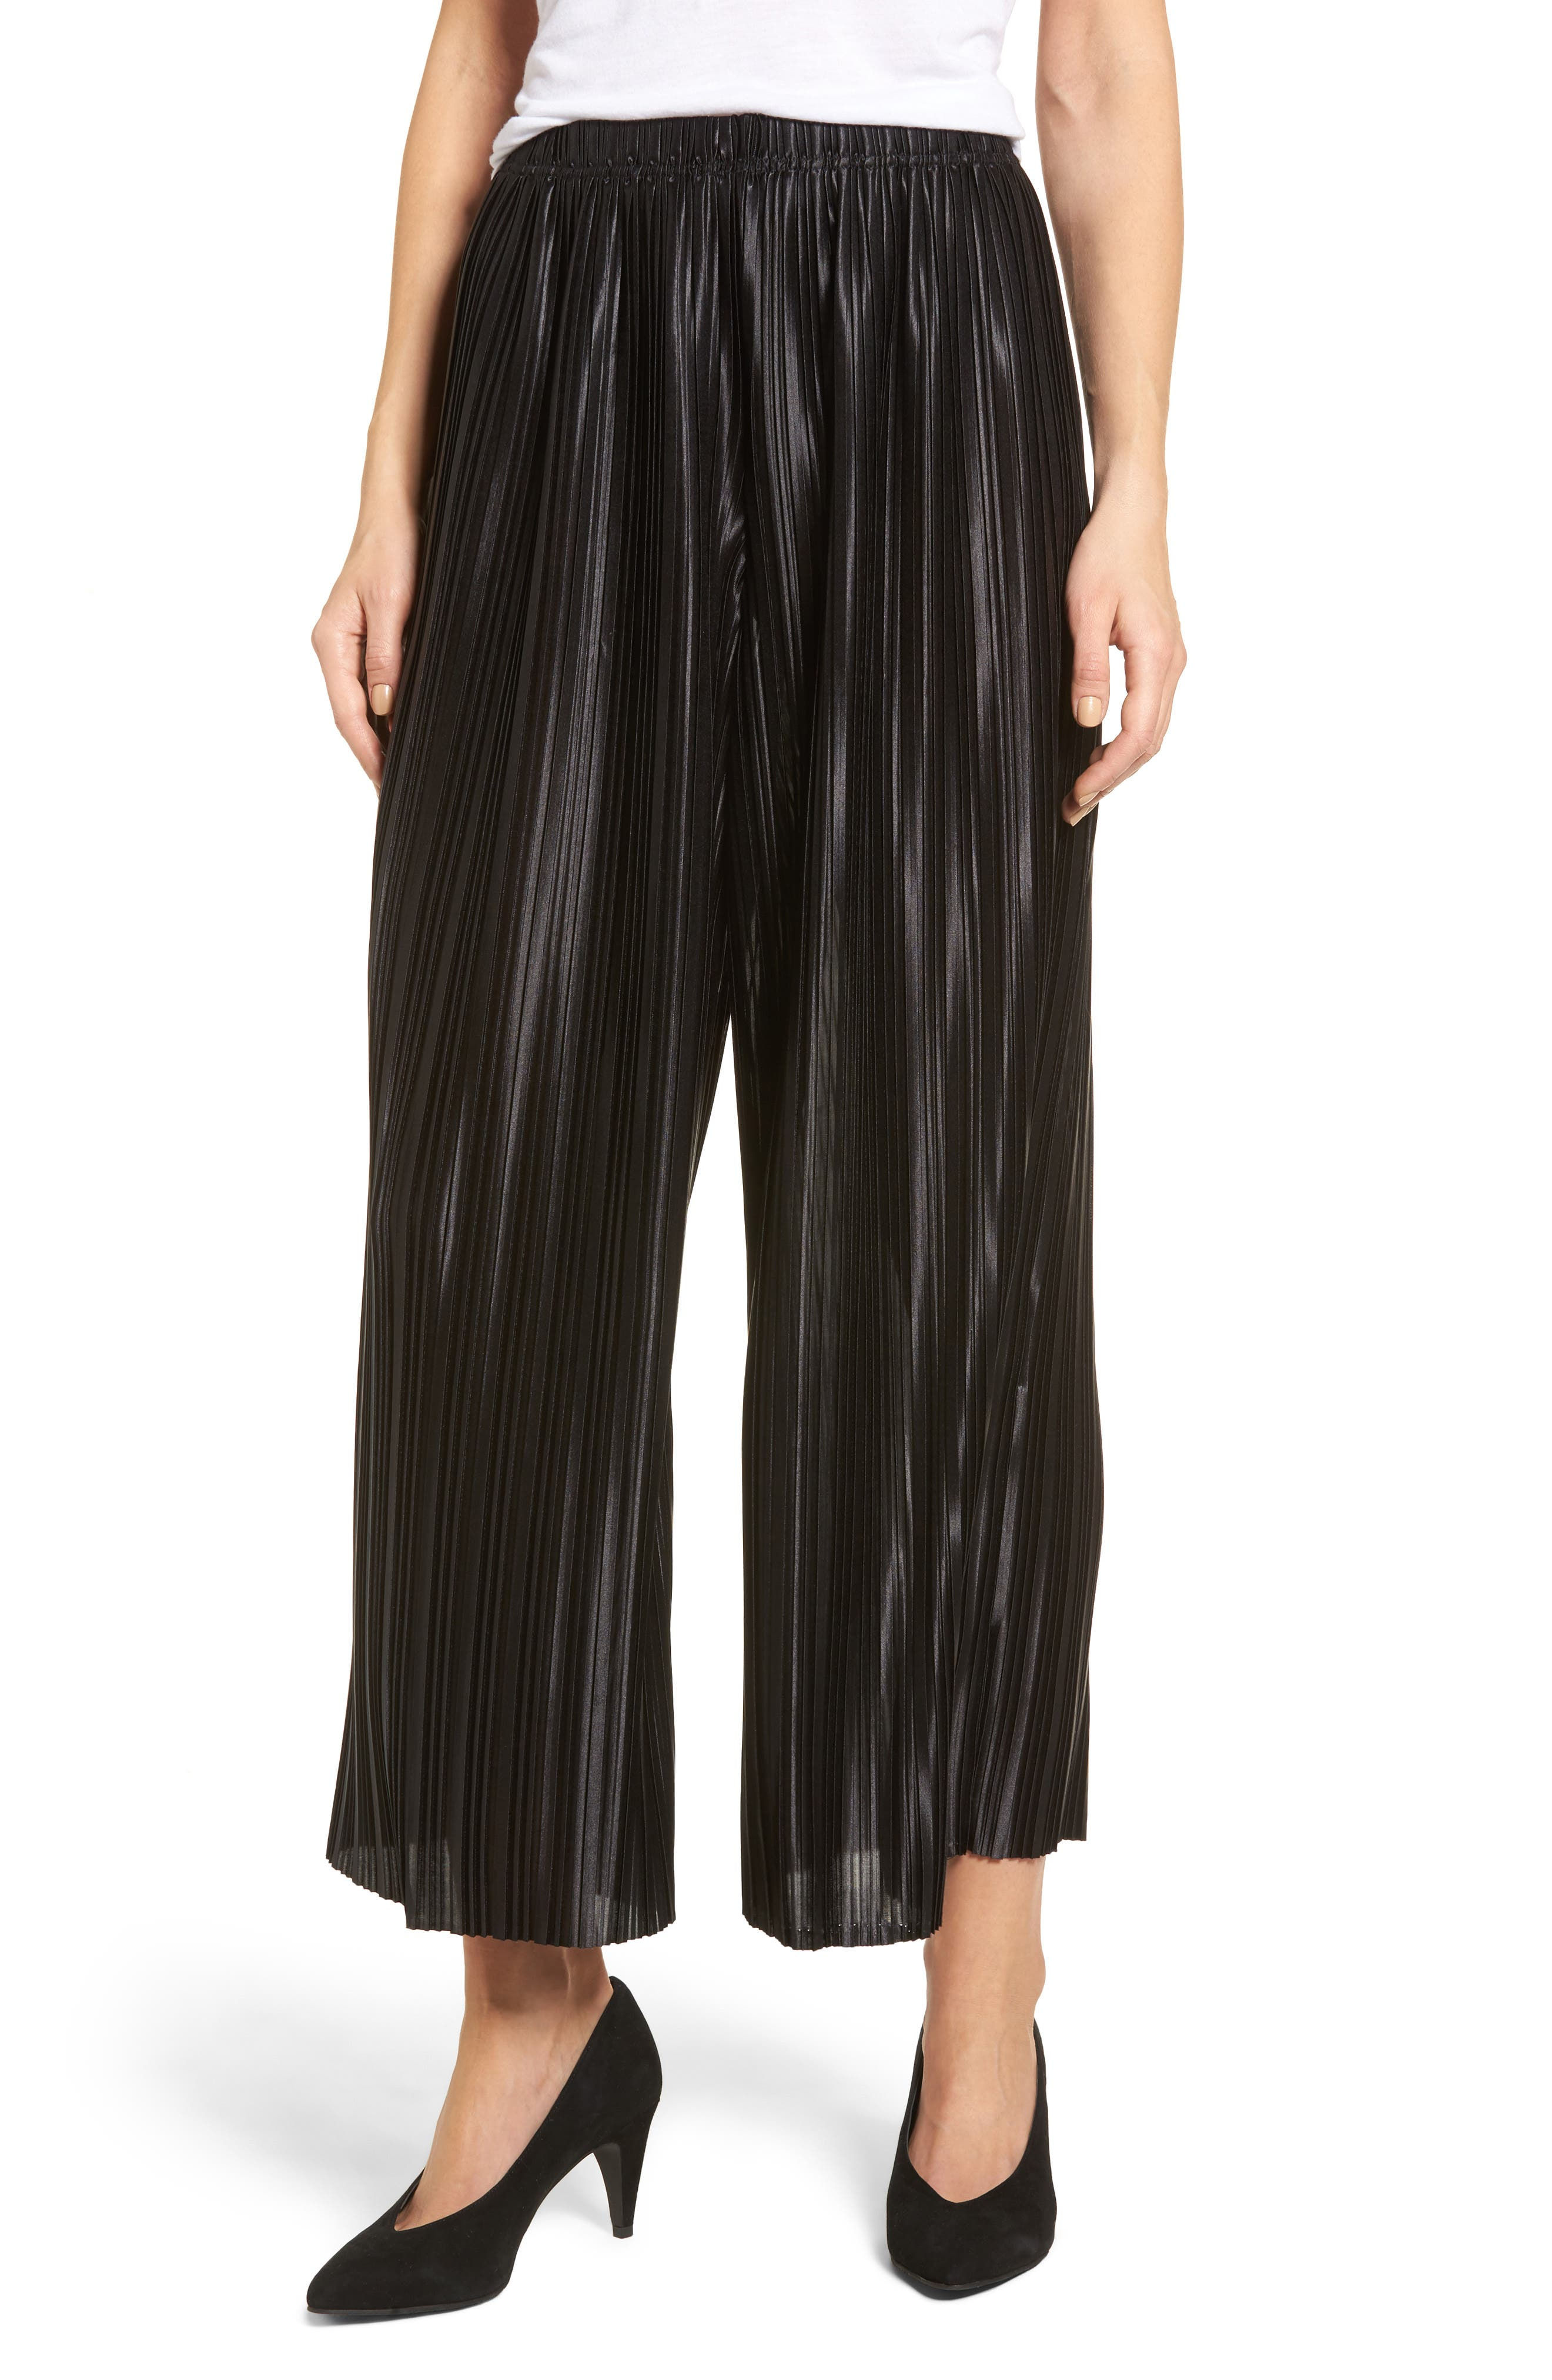 Just Pleat It Culottes,                             Main thumbnail 1, color,                             001